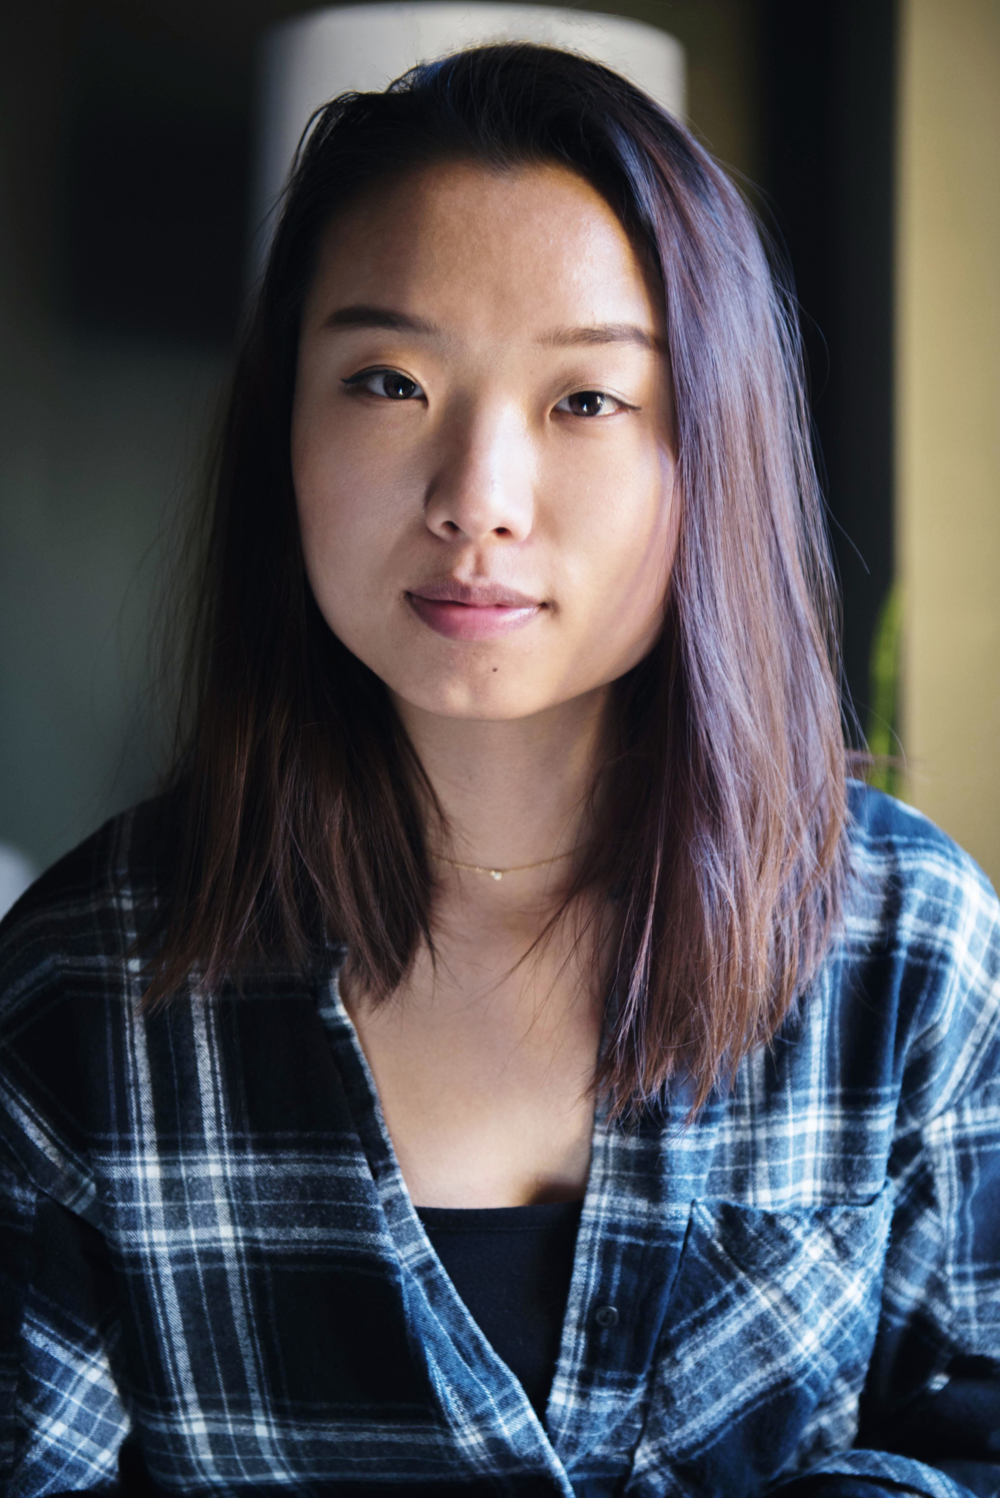 Eva Zhang, culinary: Eva grew up in Liaoning, ran a tiny lunch restaurant, received a BA at Shenyang Normal University, and then received an MBA at Fort Hays University